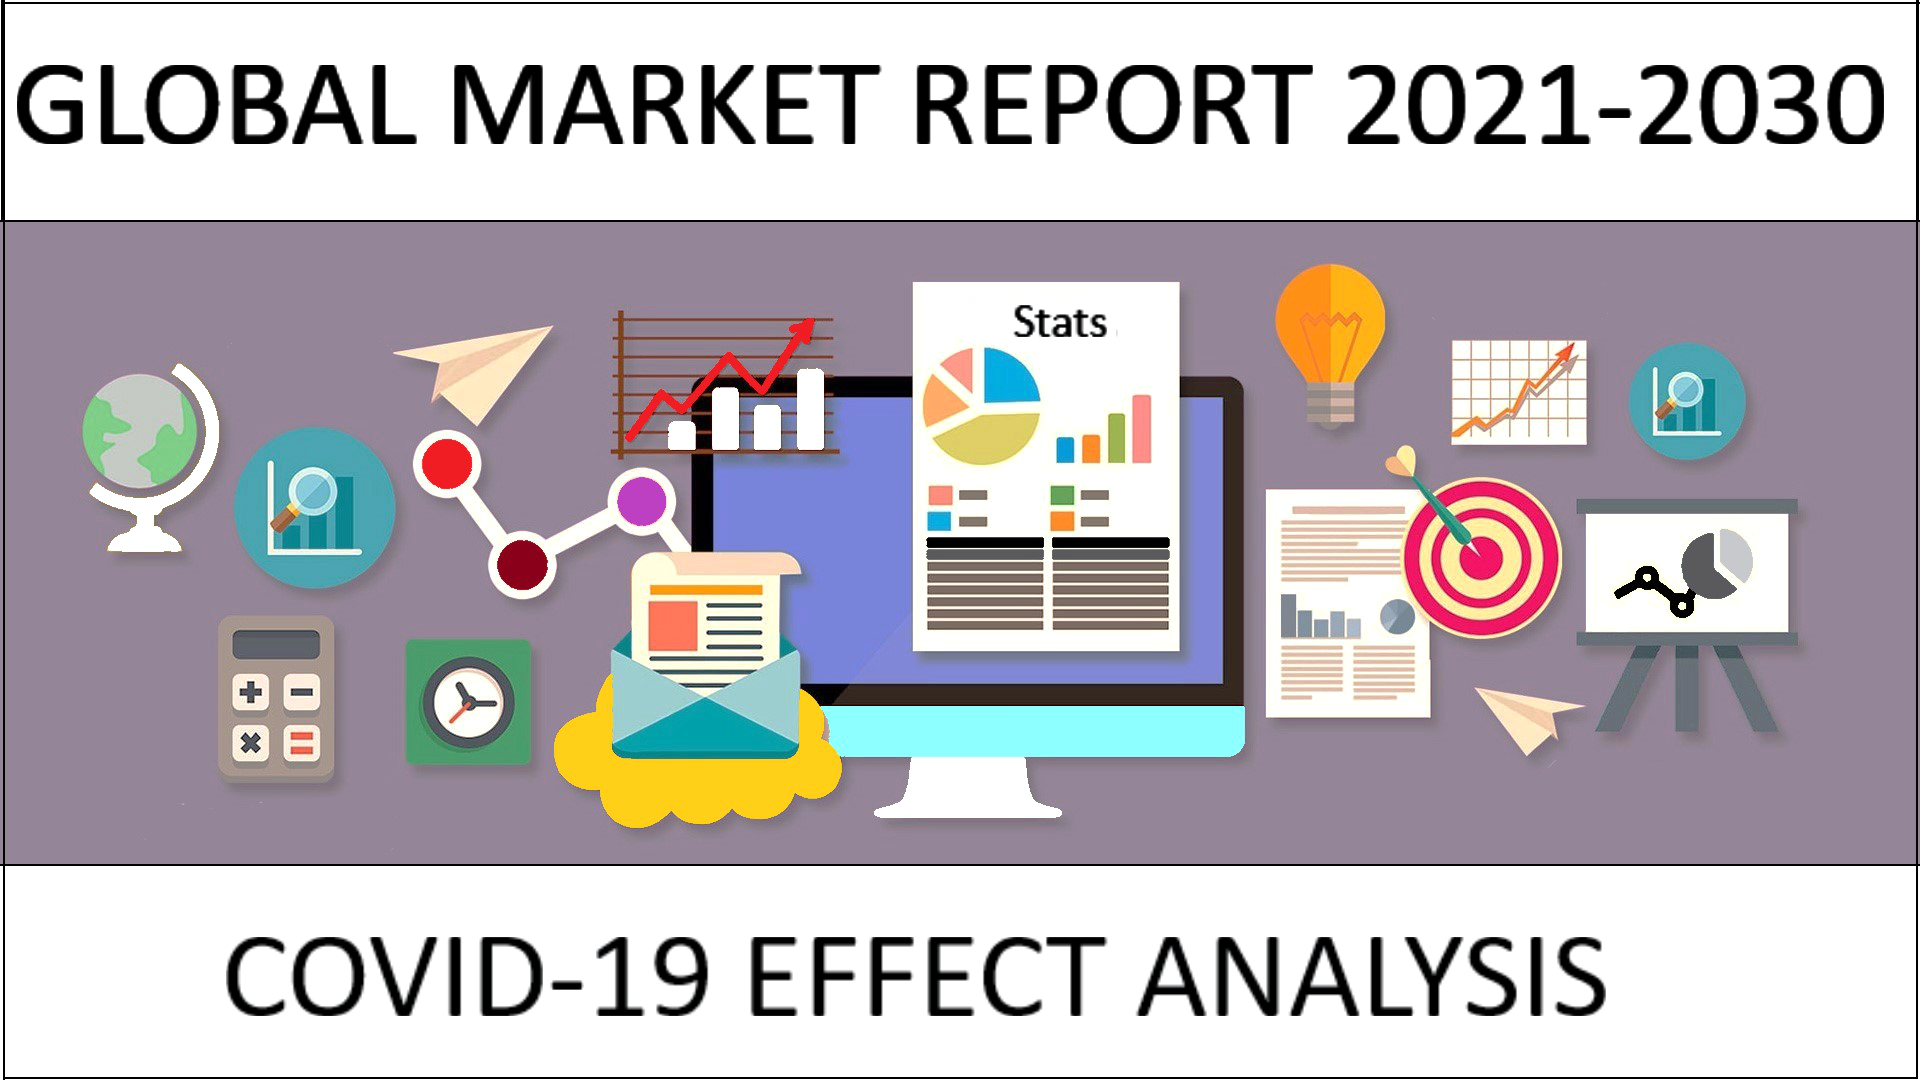 Global Meeting Software Solutions Market Report 2021